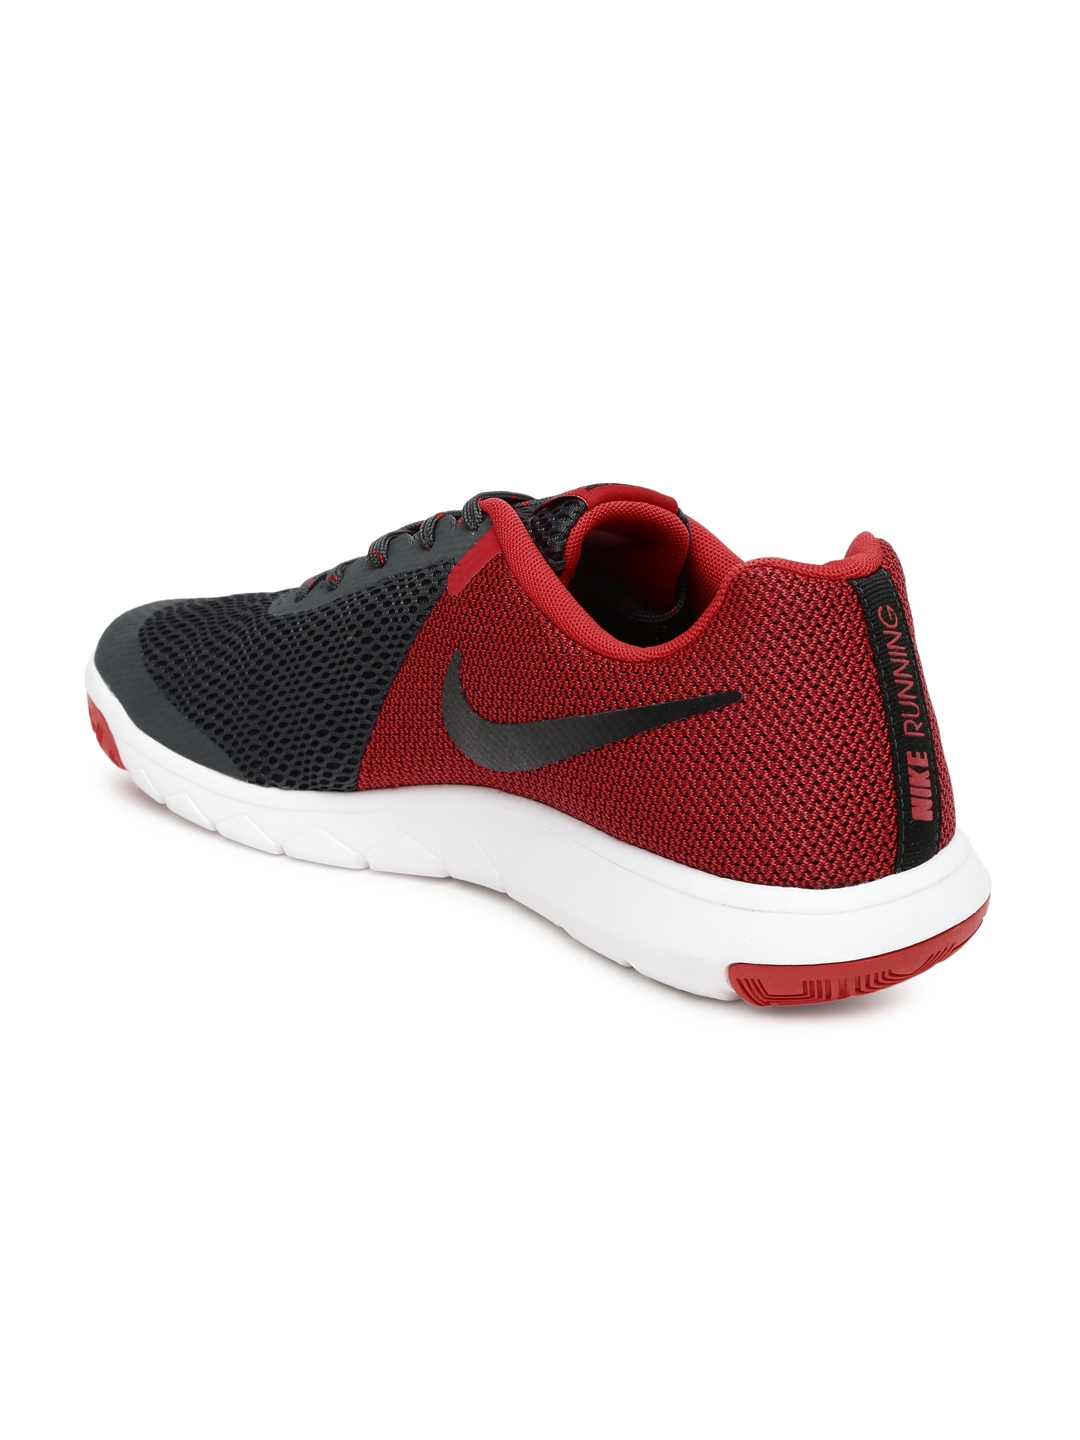 bad6e47e12d8 Buy Nike Men Charcoal Grey   Red Flex Experience RN 5 Running Shoes - Sports  Shoes for Men 1547947